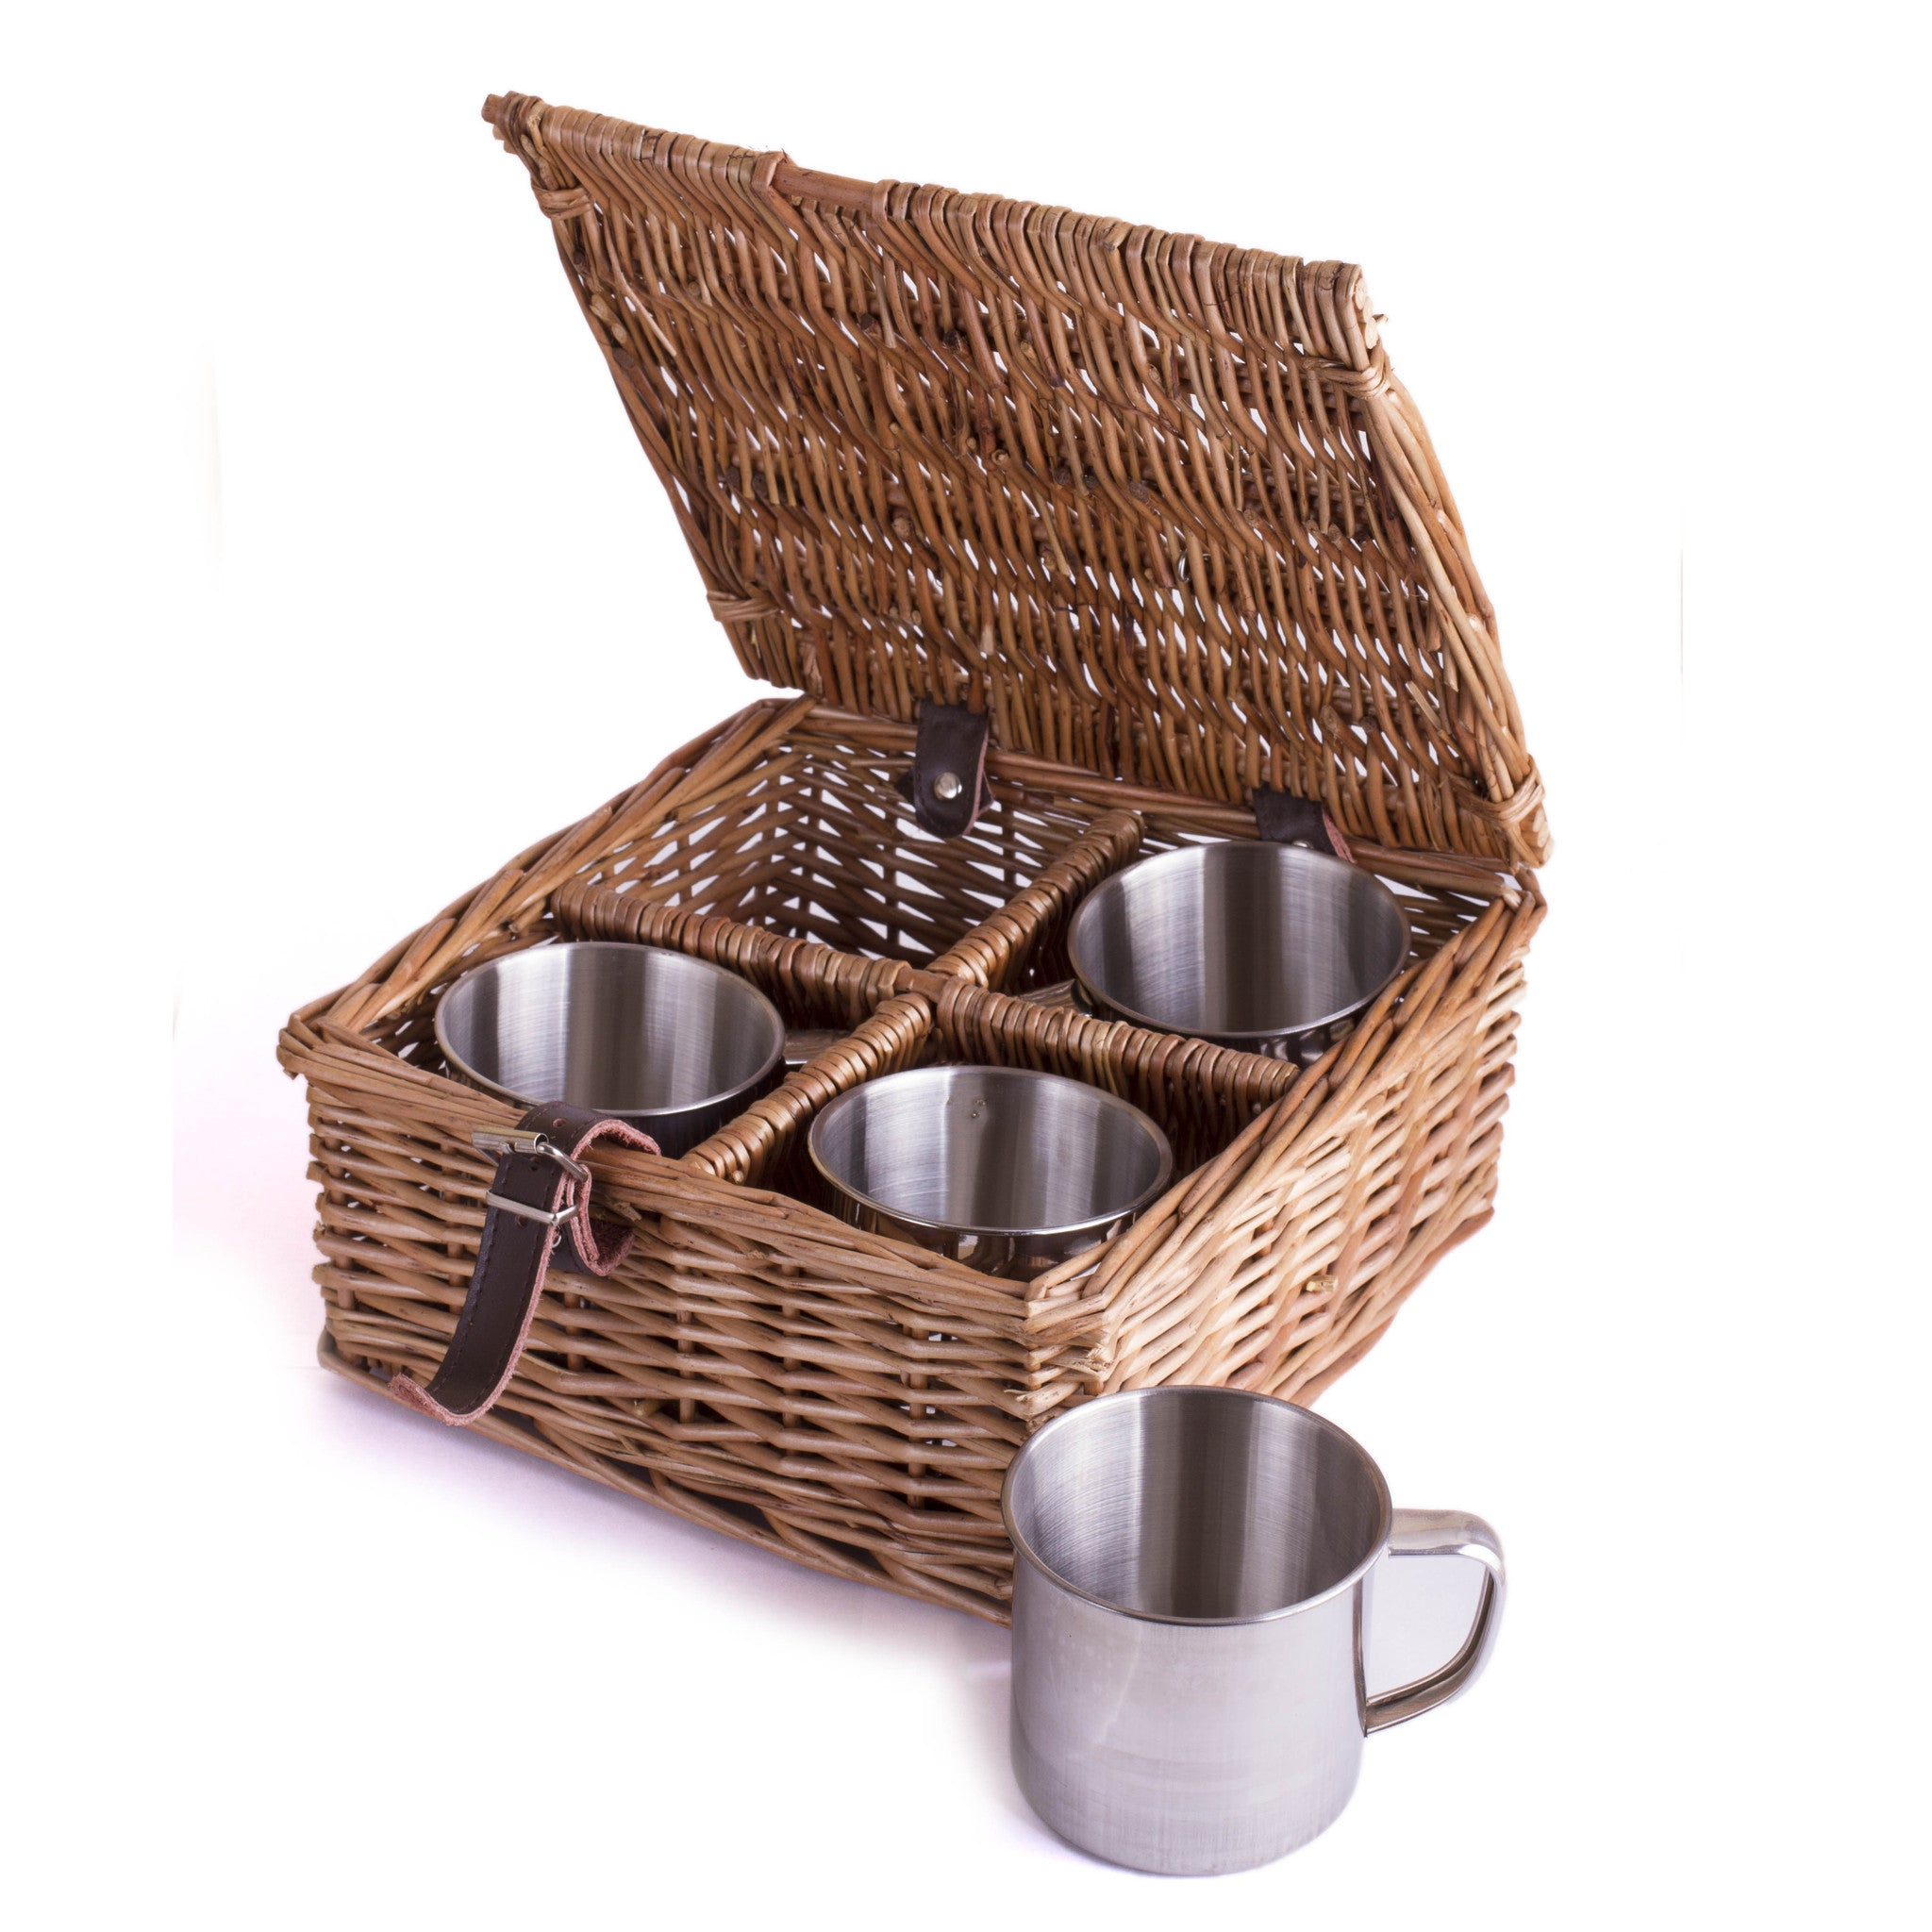 4 Cups and Case (Add On Price) - Eaton Hampers & Basketware